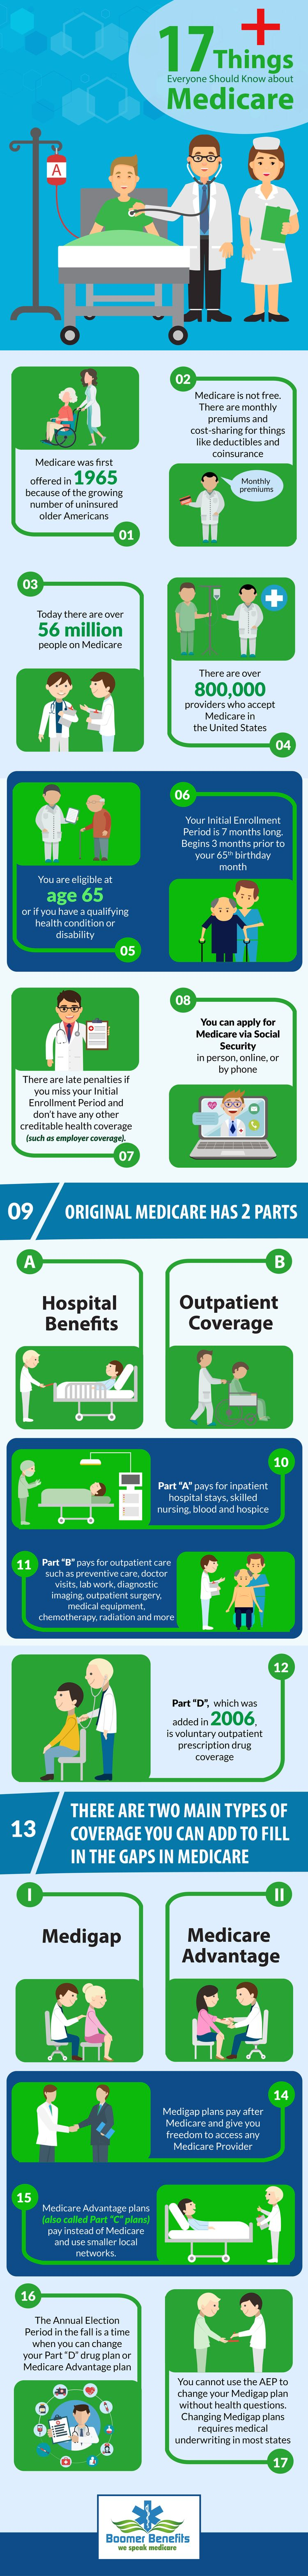 17 Things to Know about Medicare Infographic